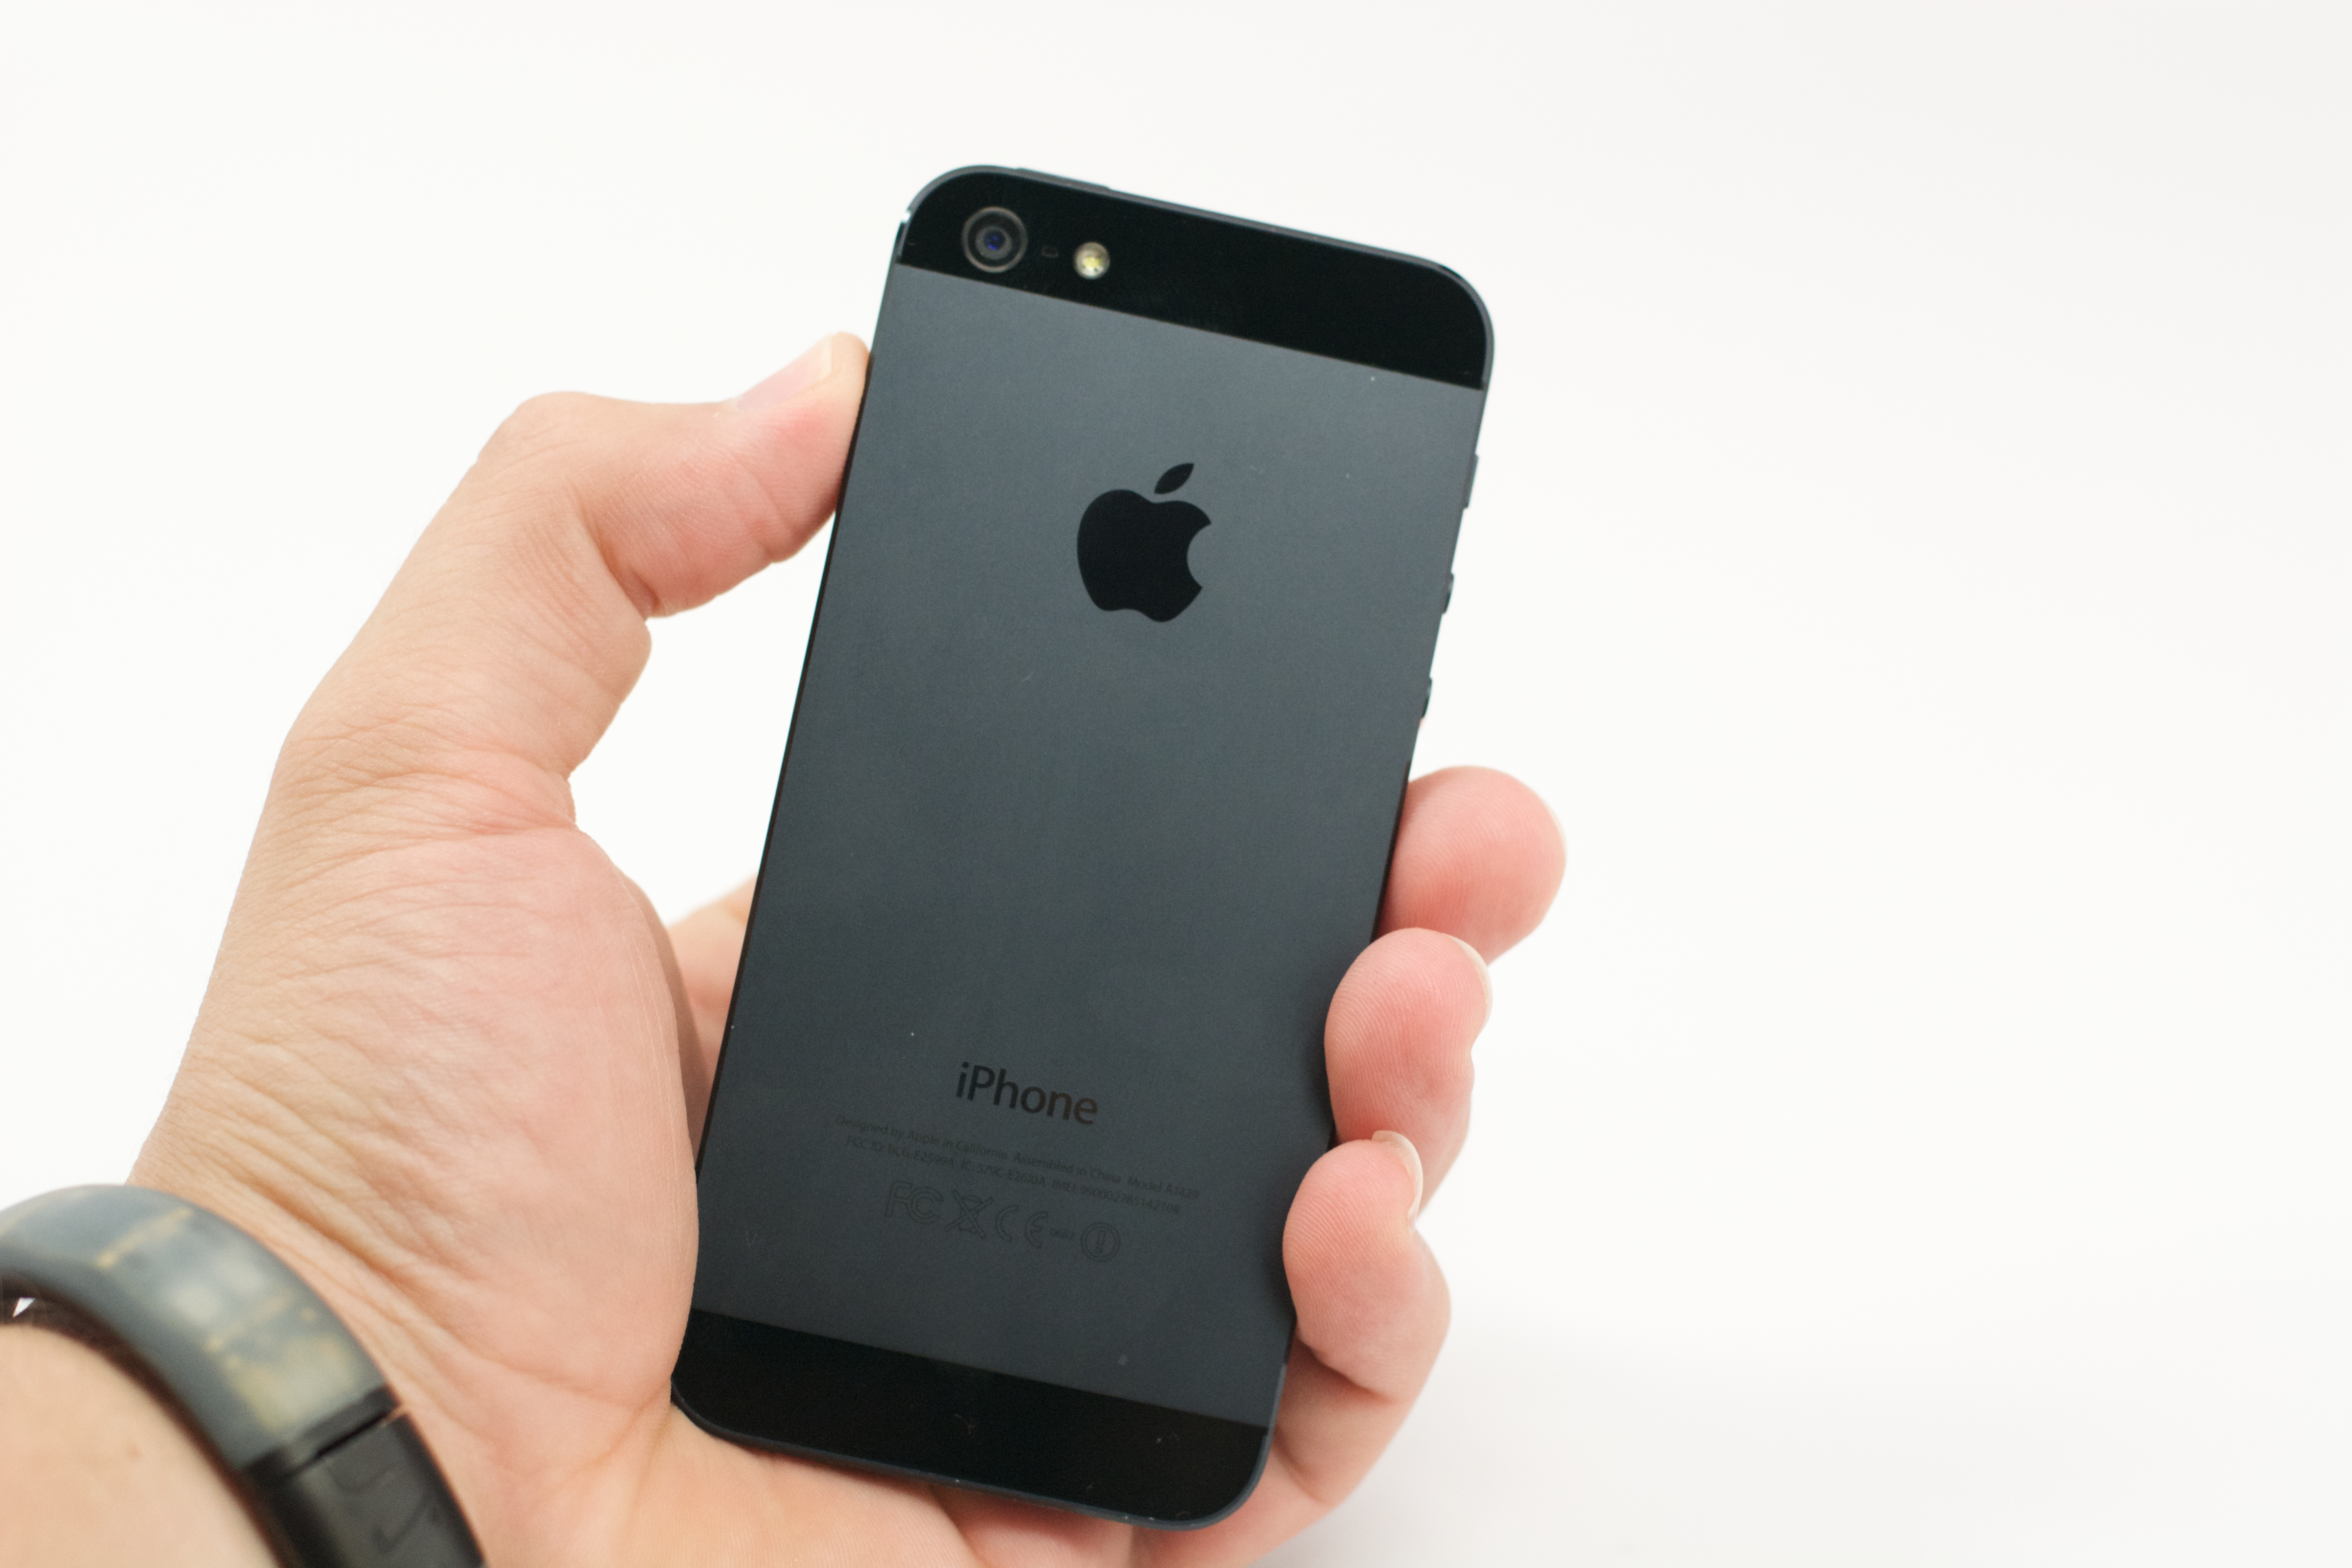 iphone 5 release date iphone 5s release date amp rumor roundup 14565